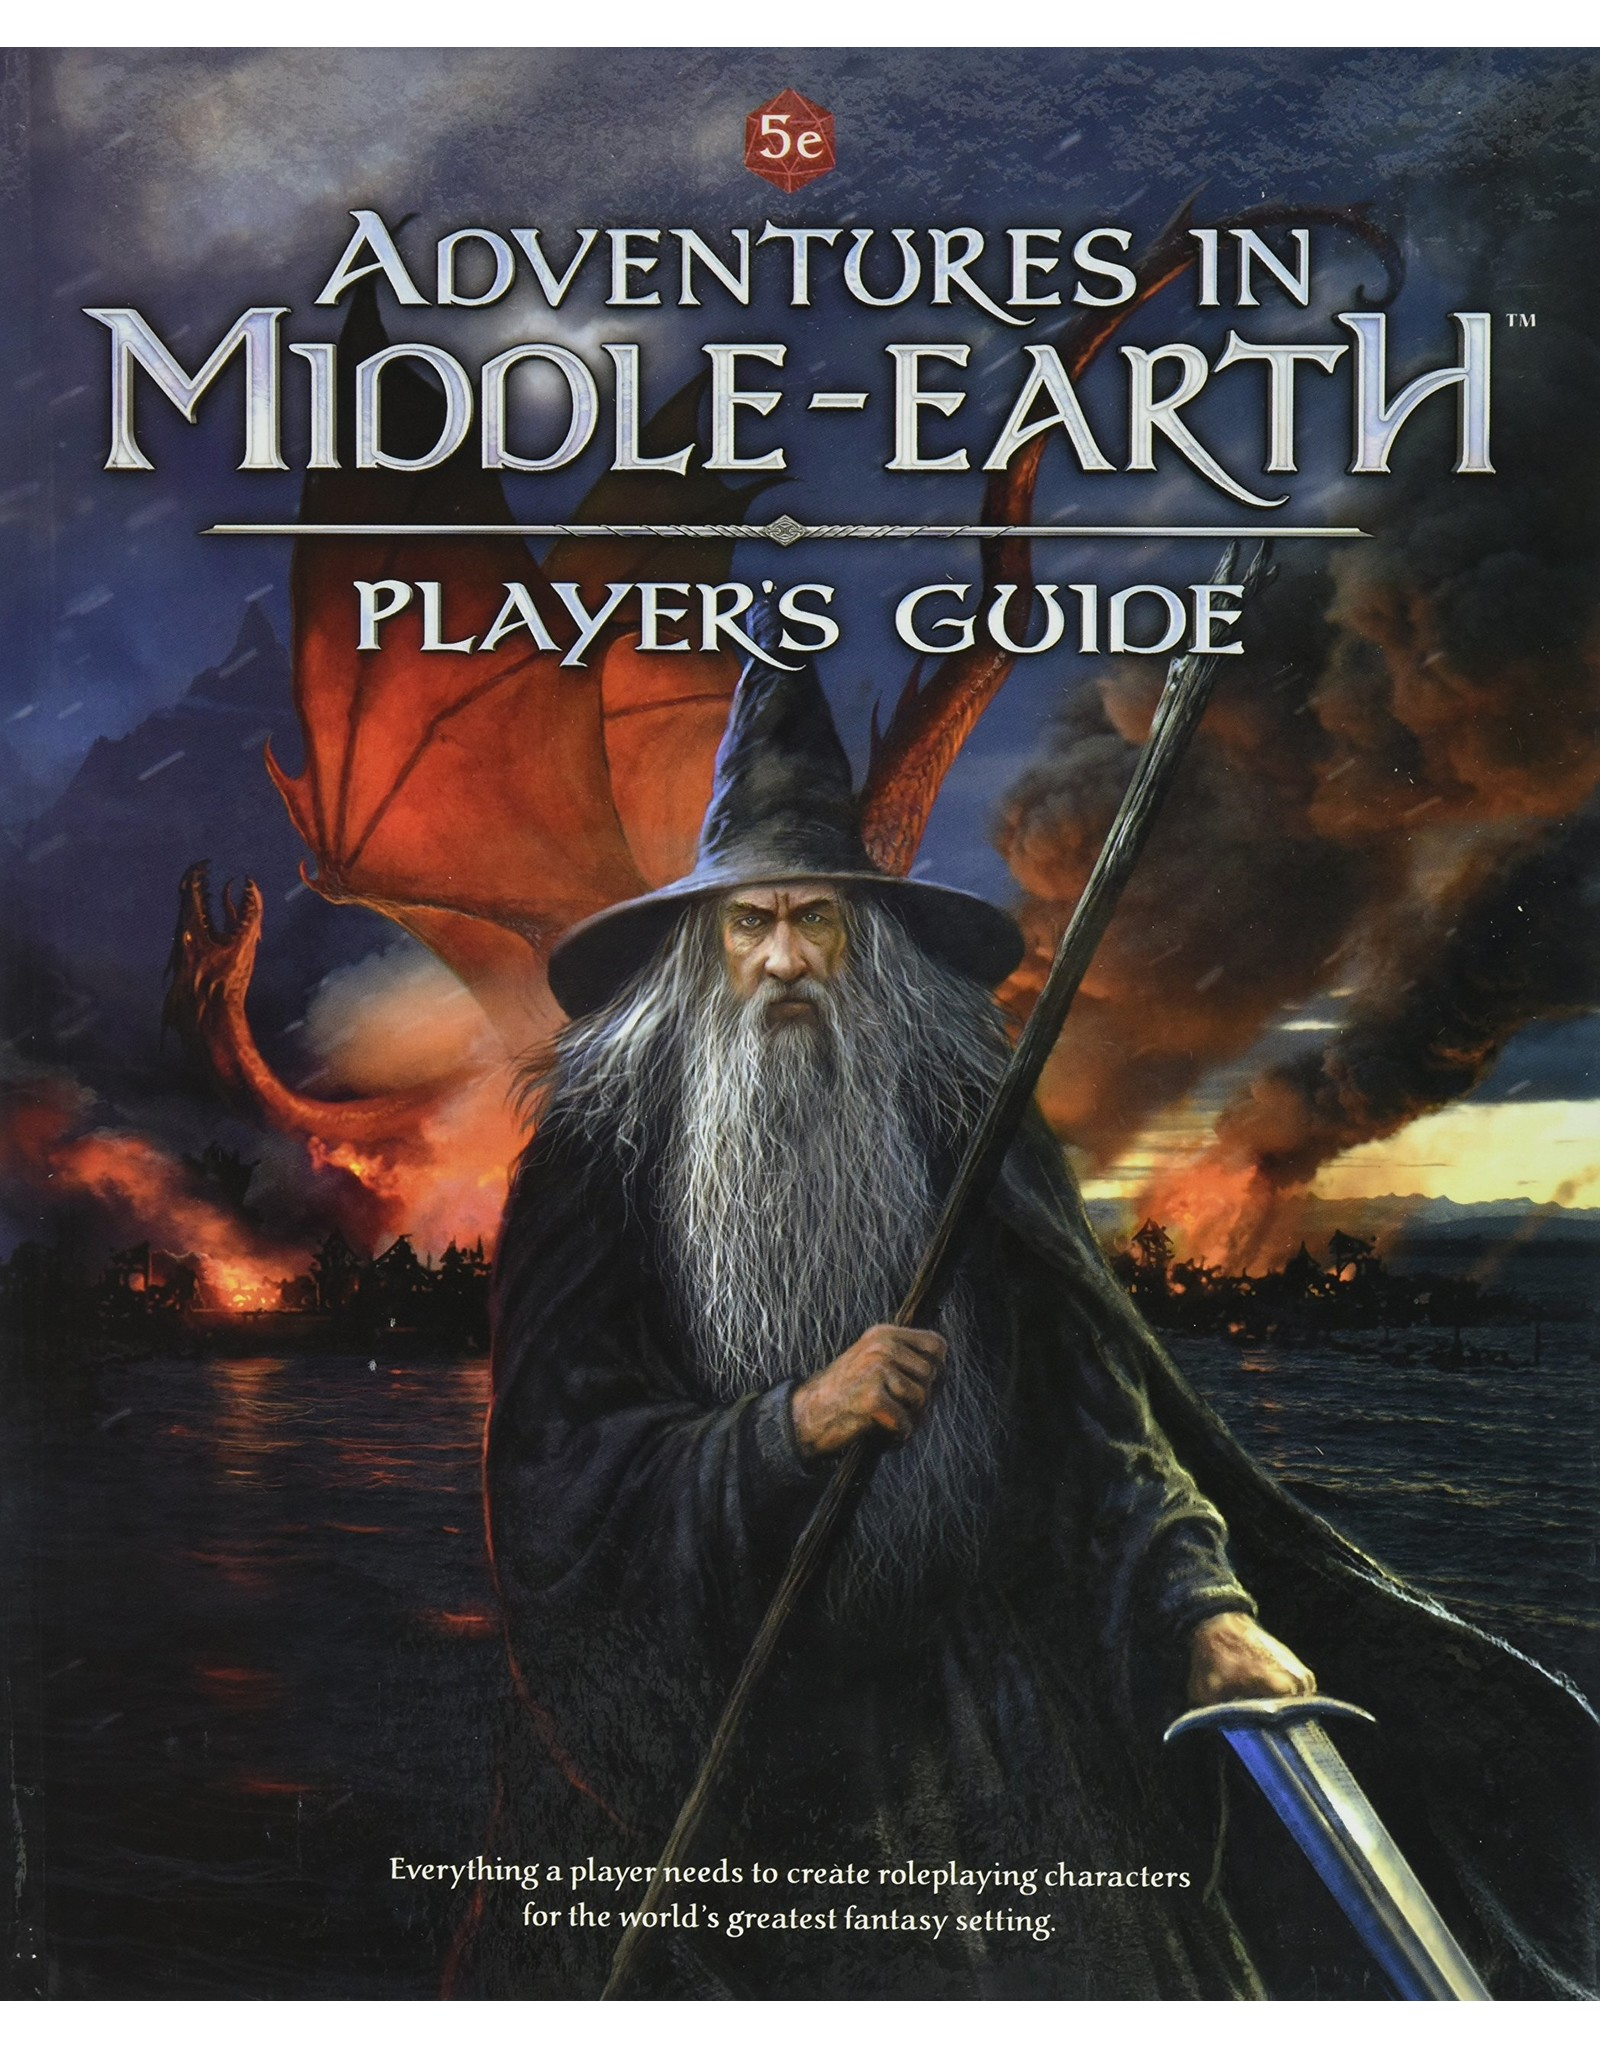 5E Adventures in Middle-Earth guide